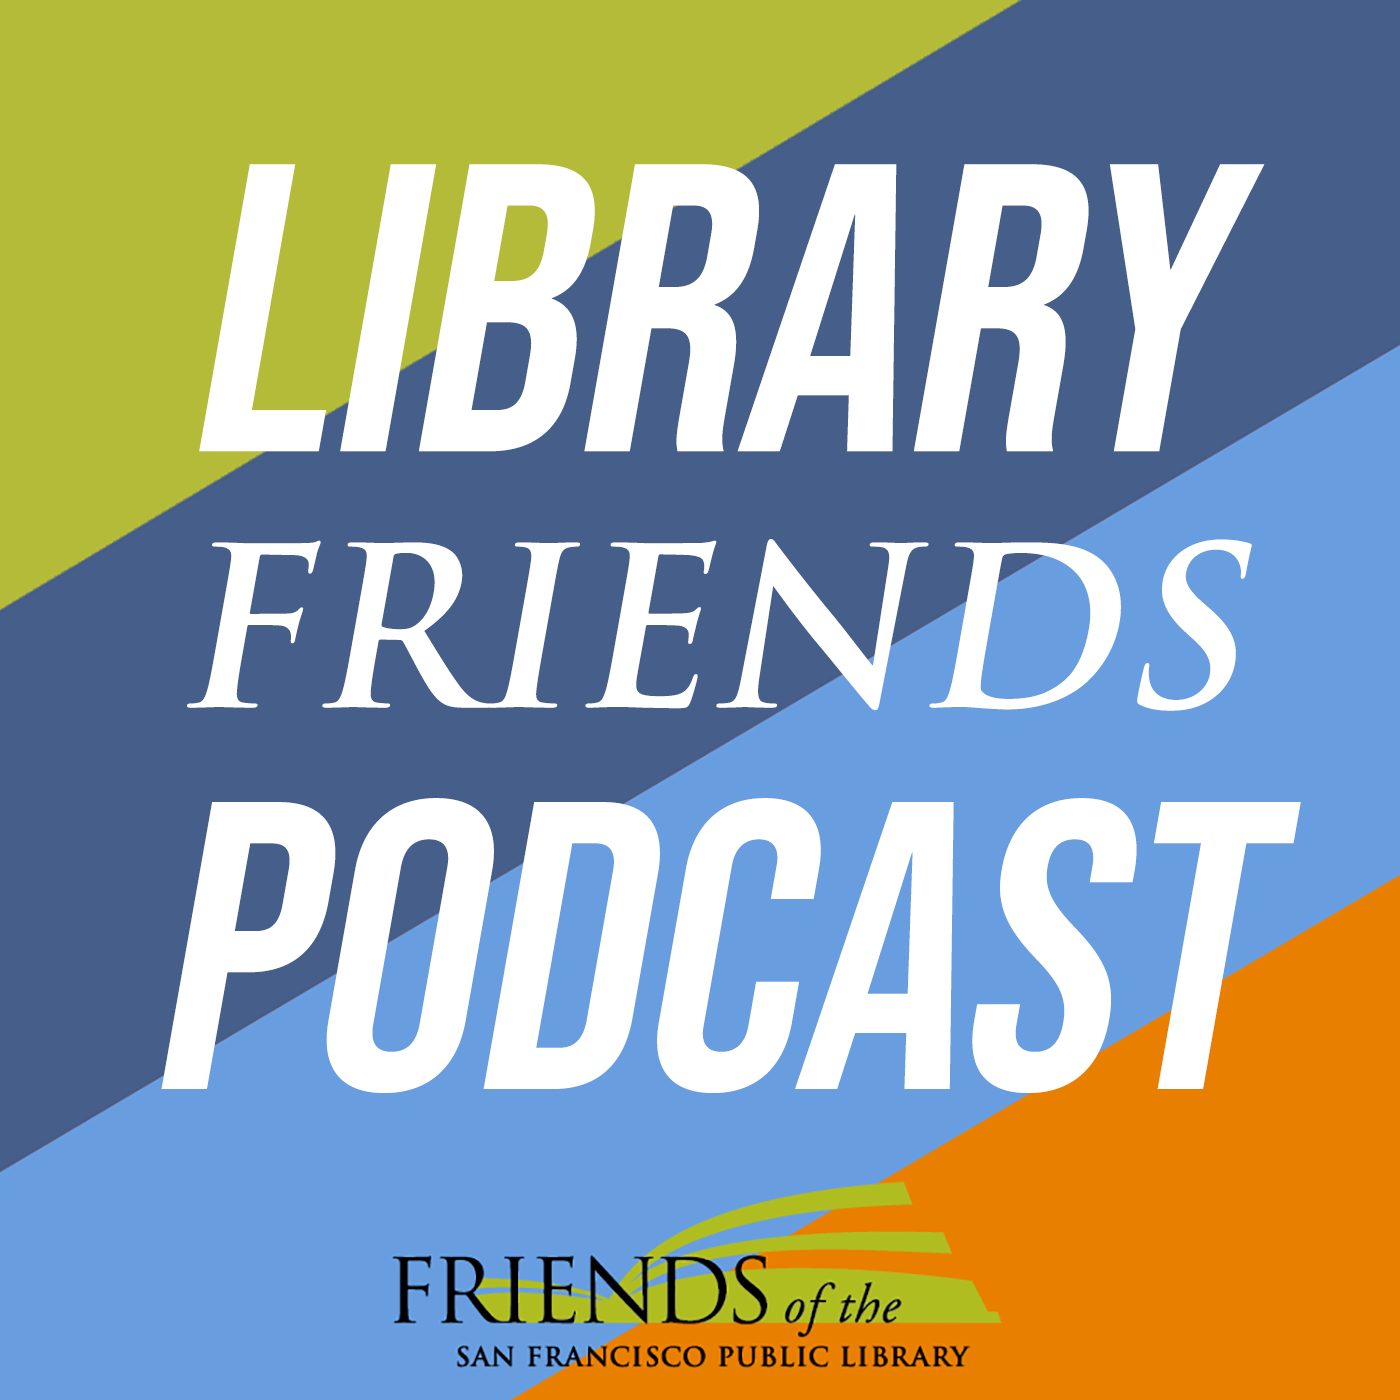 Library Friends Podcast show art